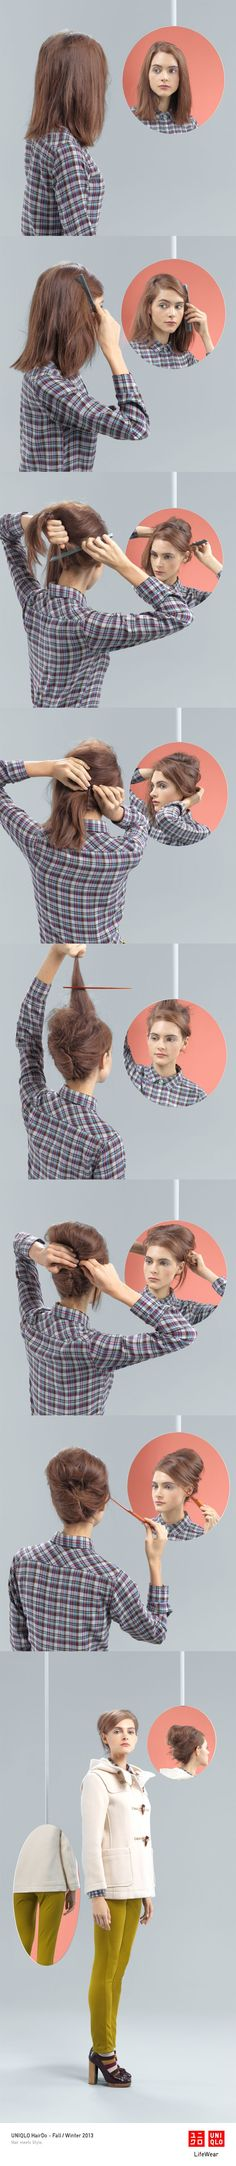 The Side Beehive - A cotton flannel shirt works well with this modern take on a…